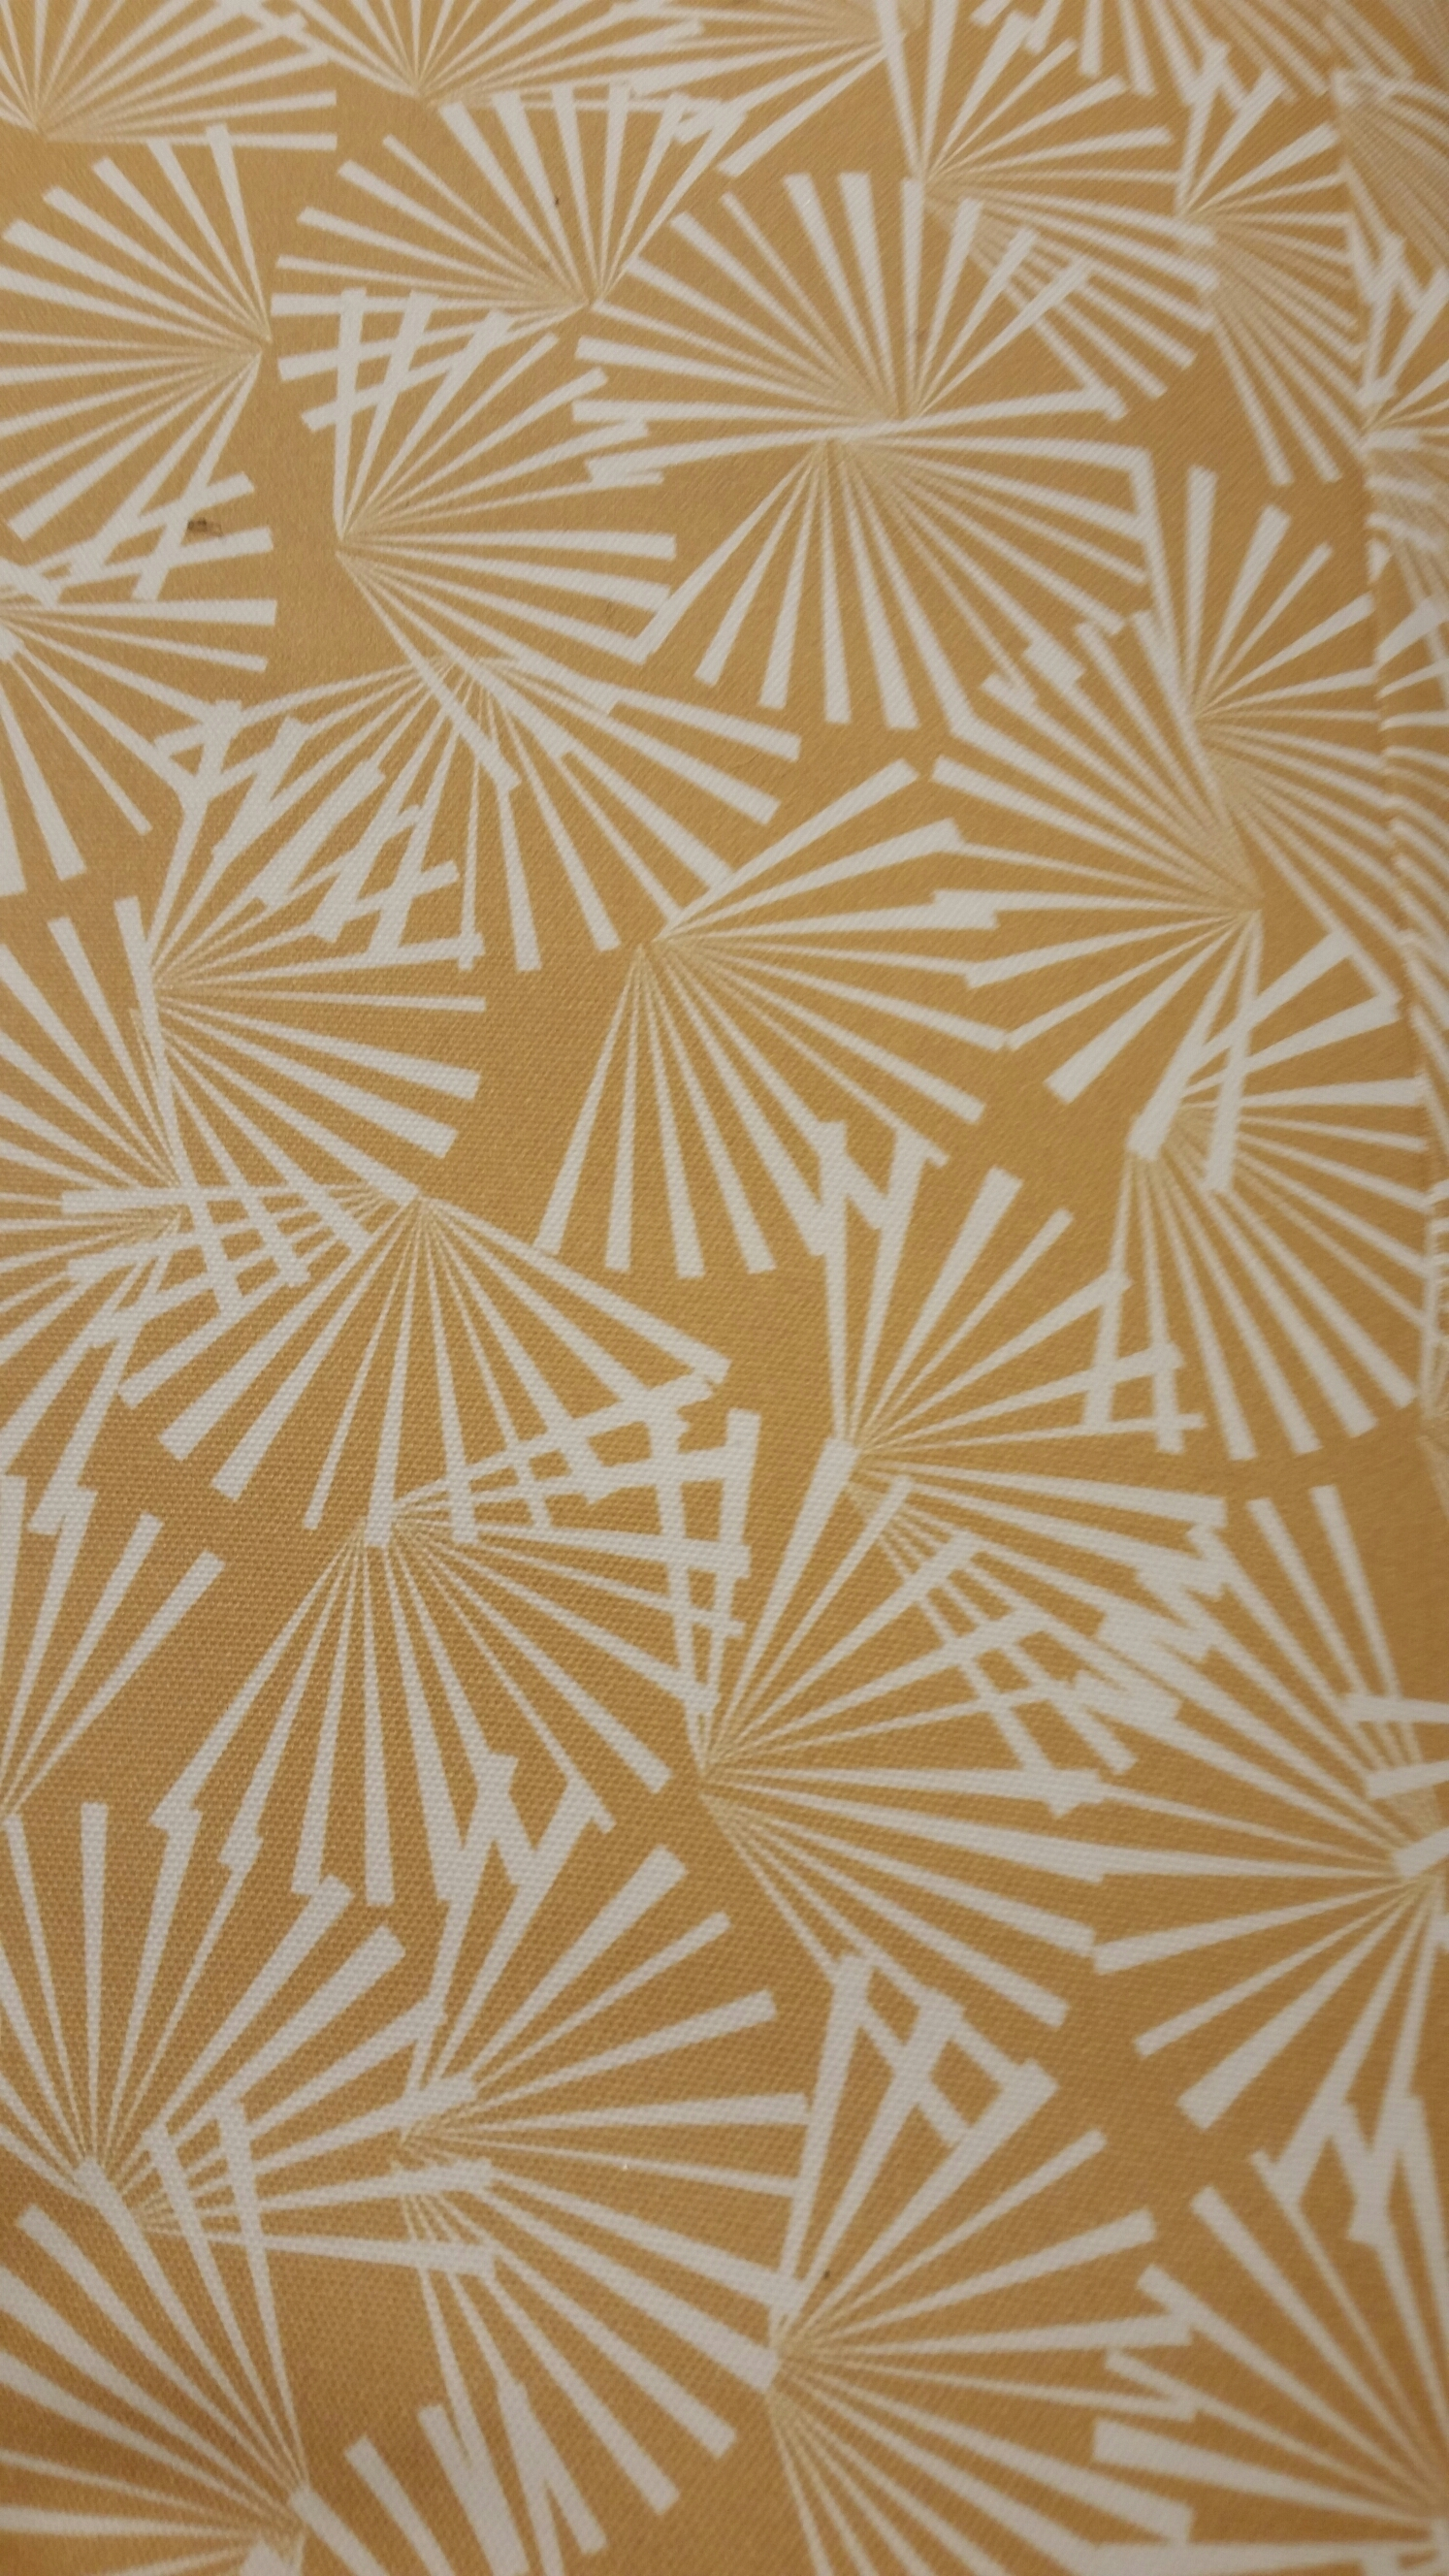 bold new prints at wildcat territory at high point  rug news  - bold new prints at wildcat territory at high point  rug news anddesignmagazine